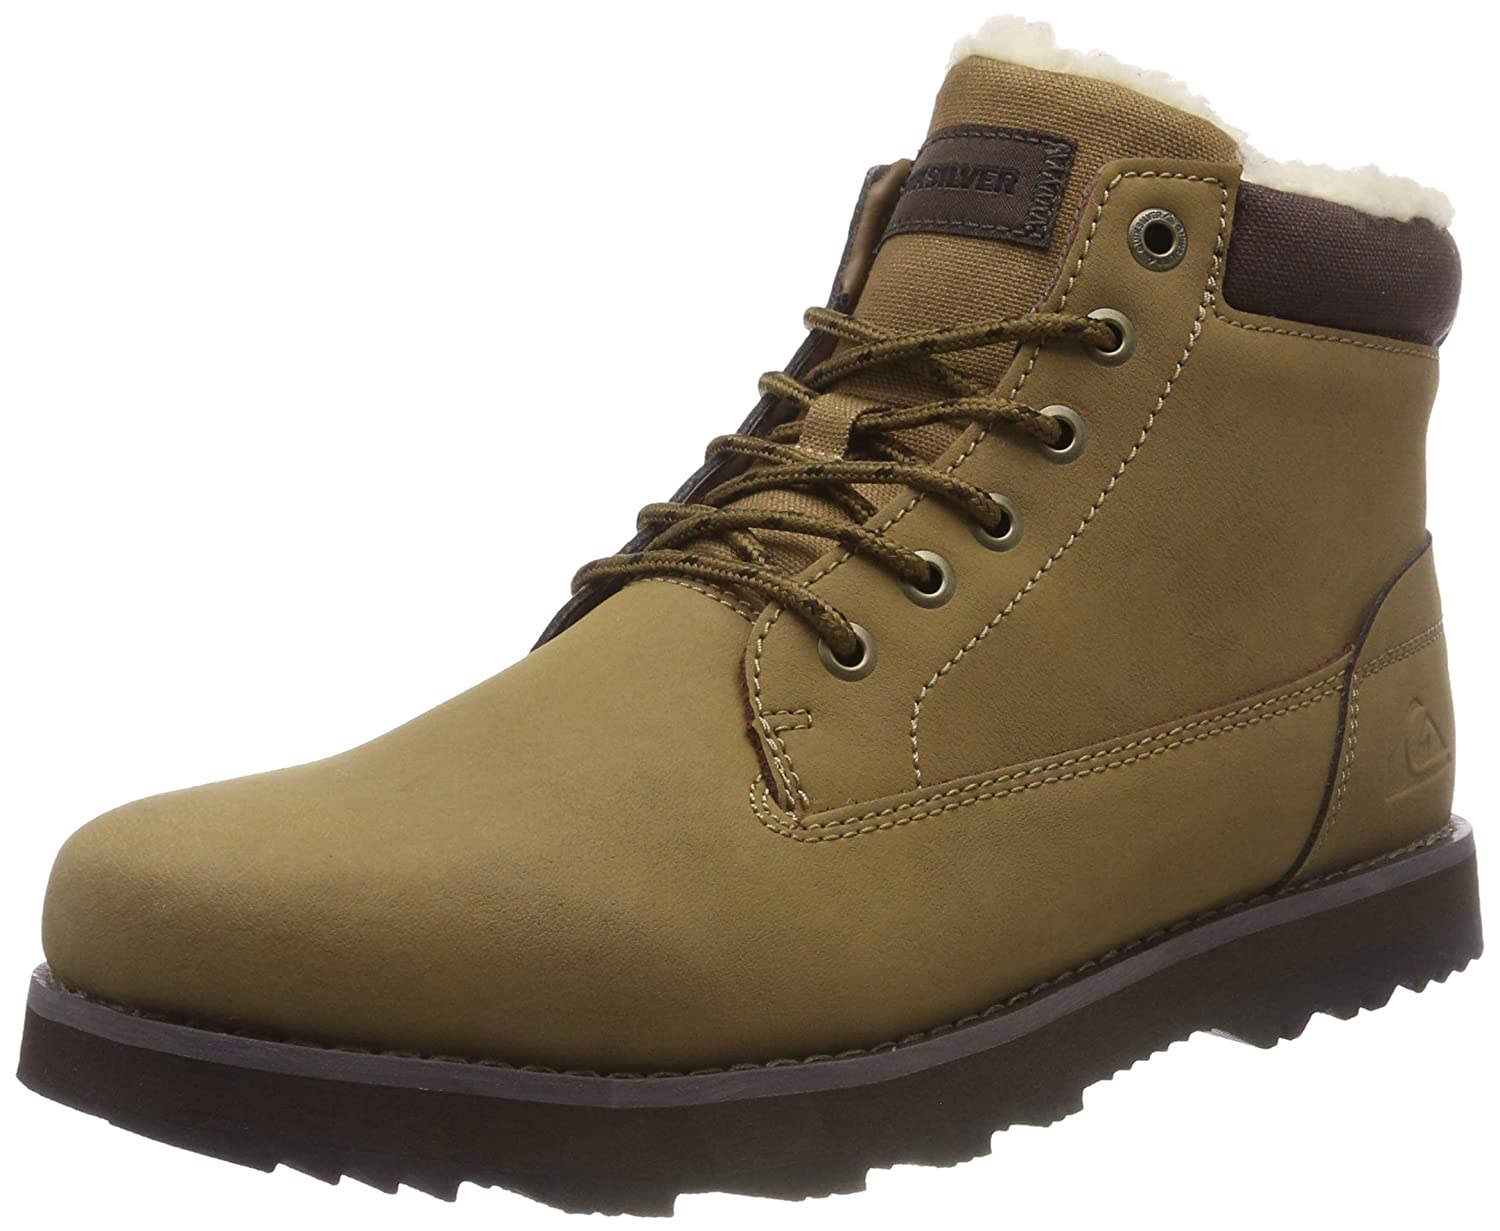 TALLA 41 EU. Quiksilver Mission V-Shoes For Men, Botas de Nieve para Hombre